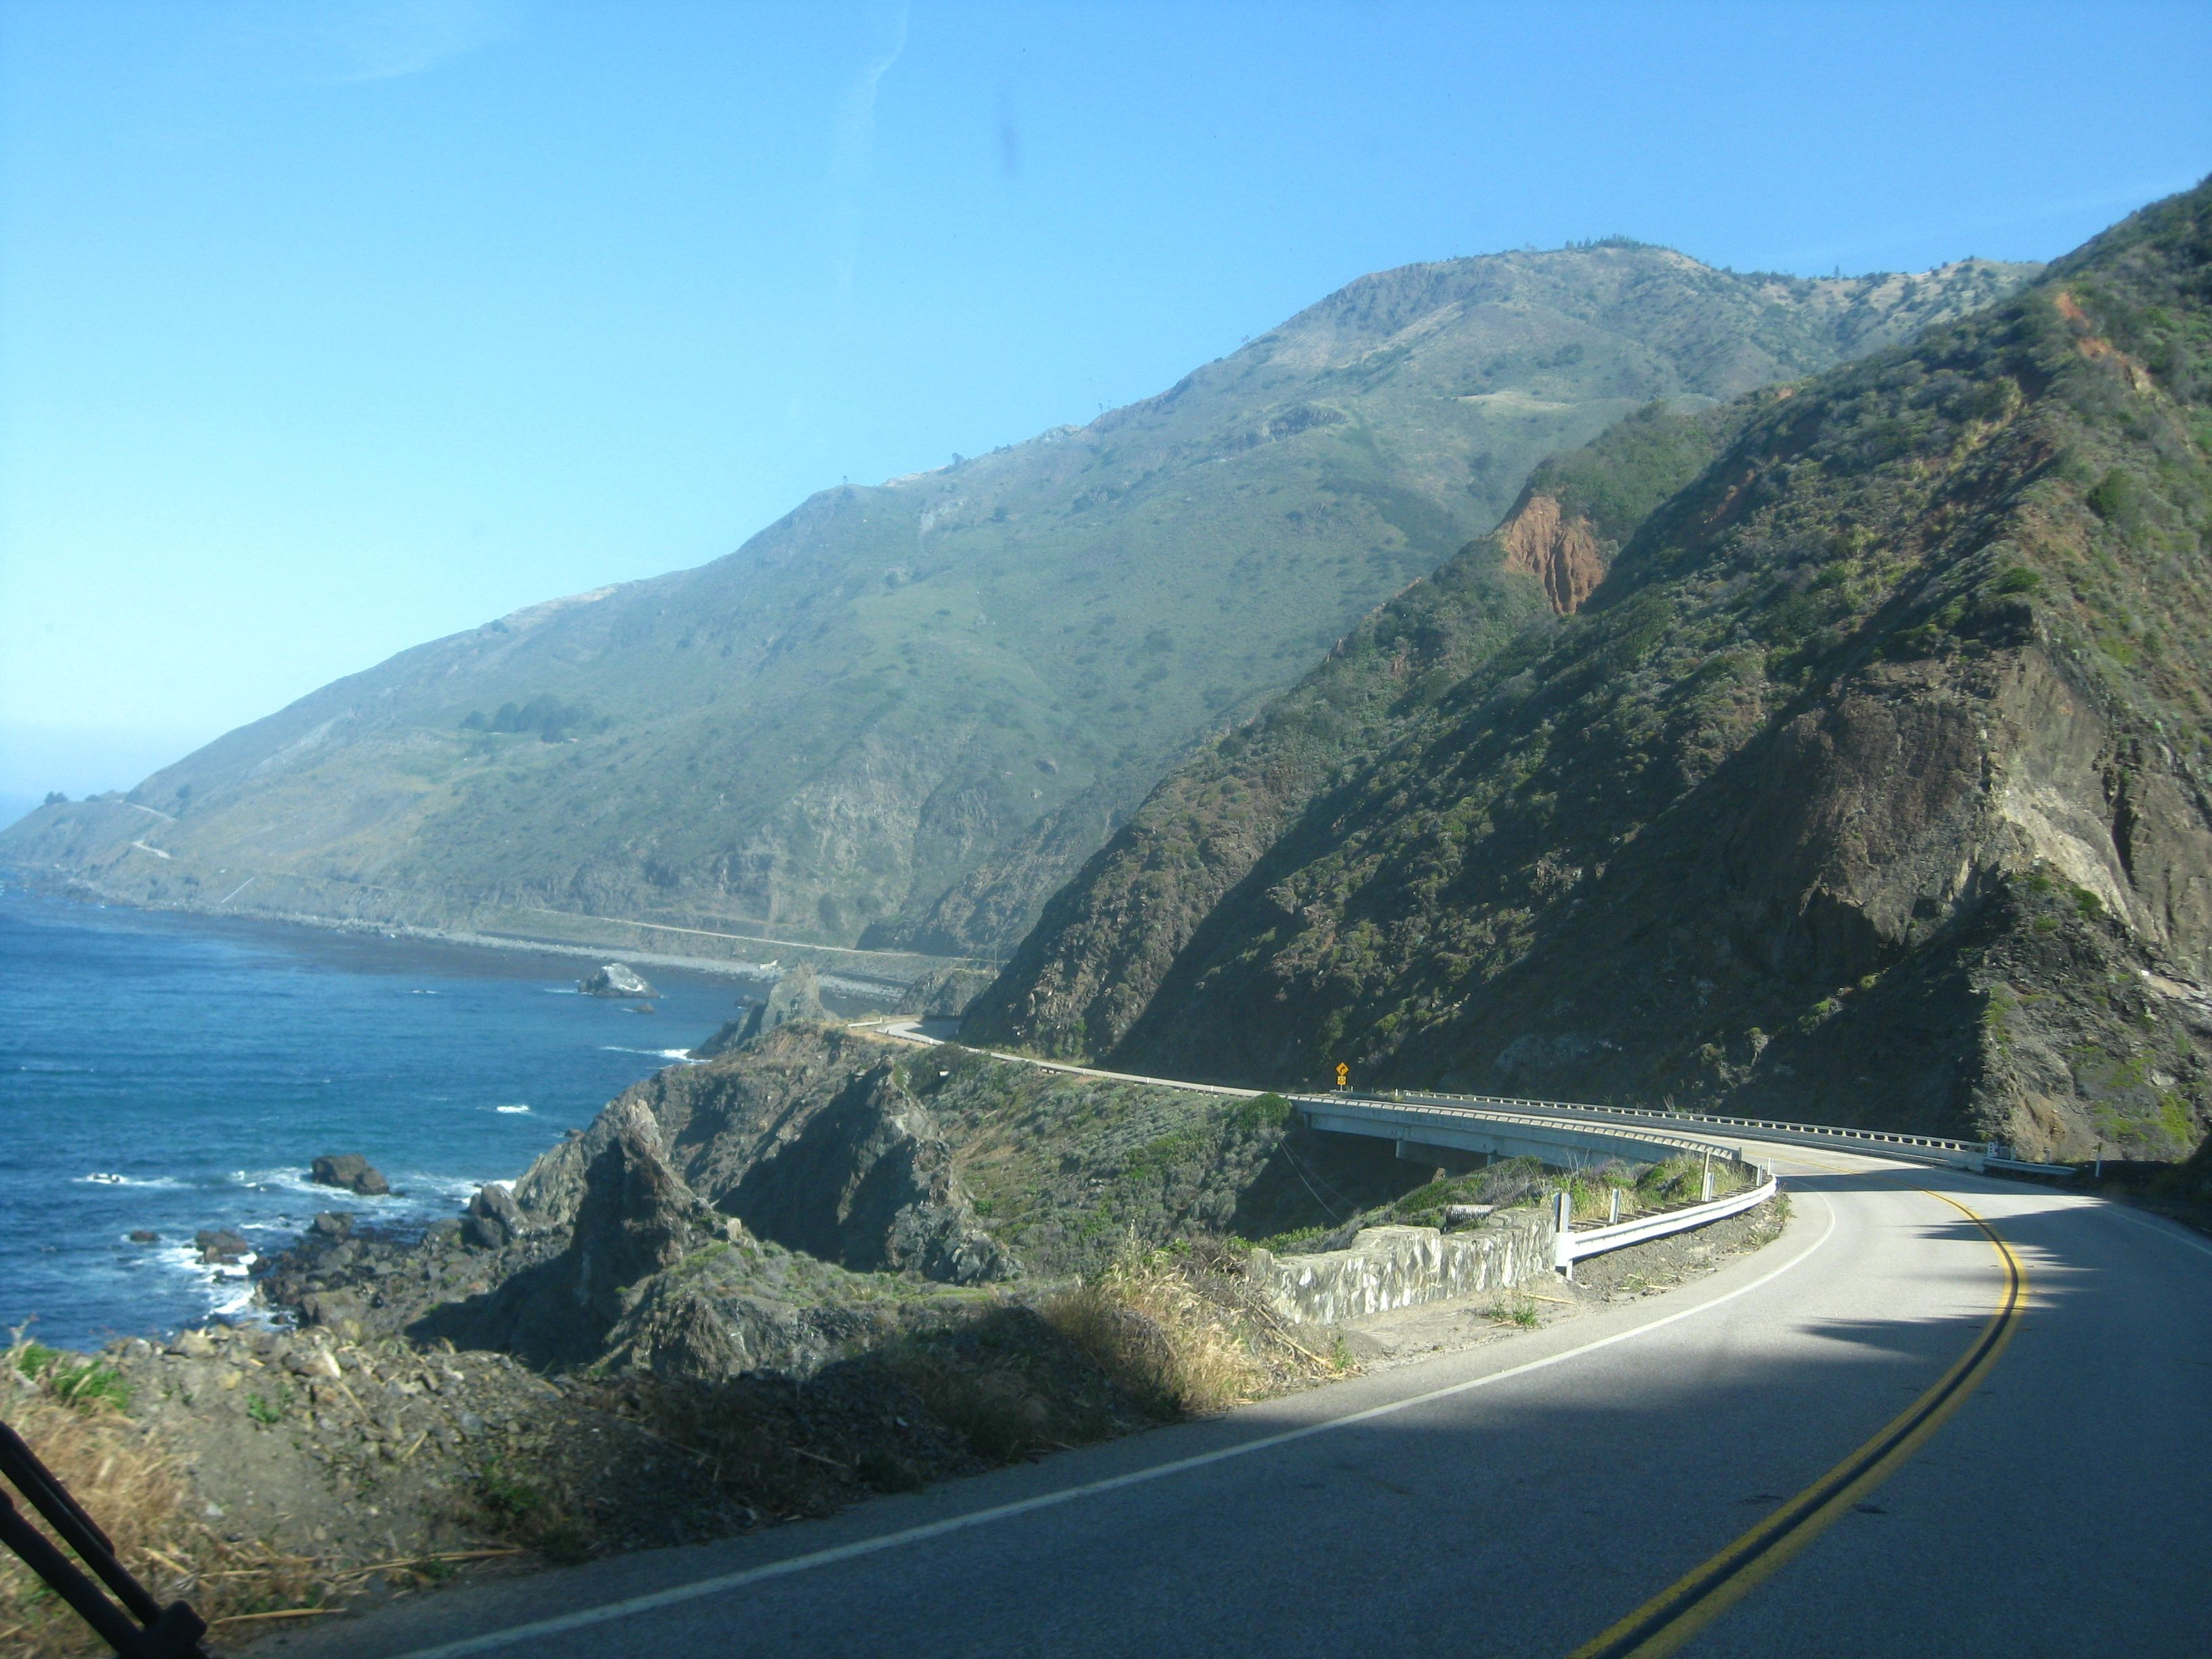 This is what to expect while driving the PCH